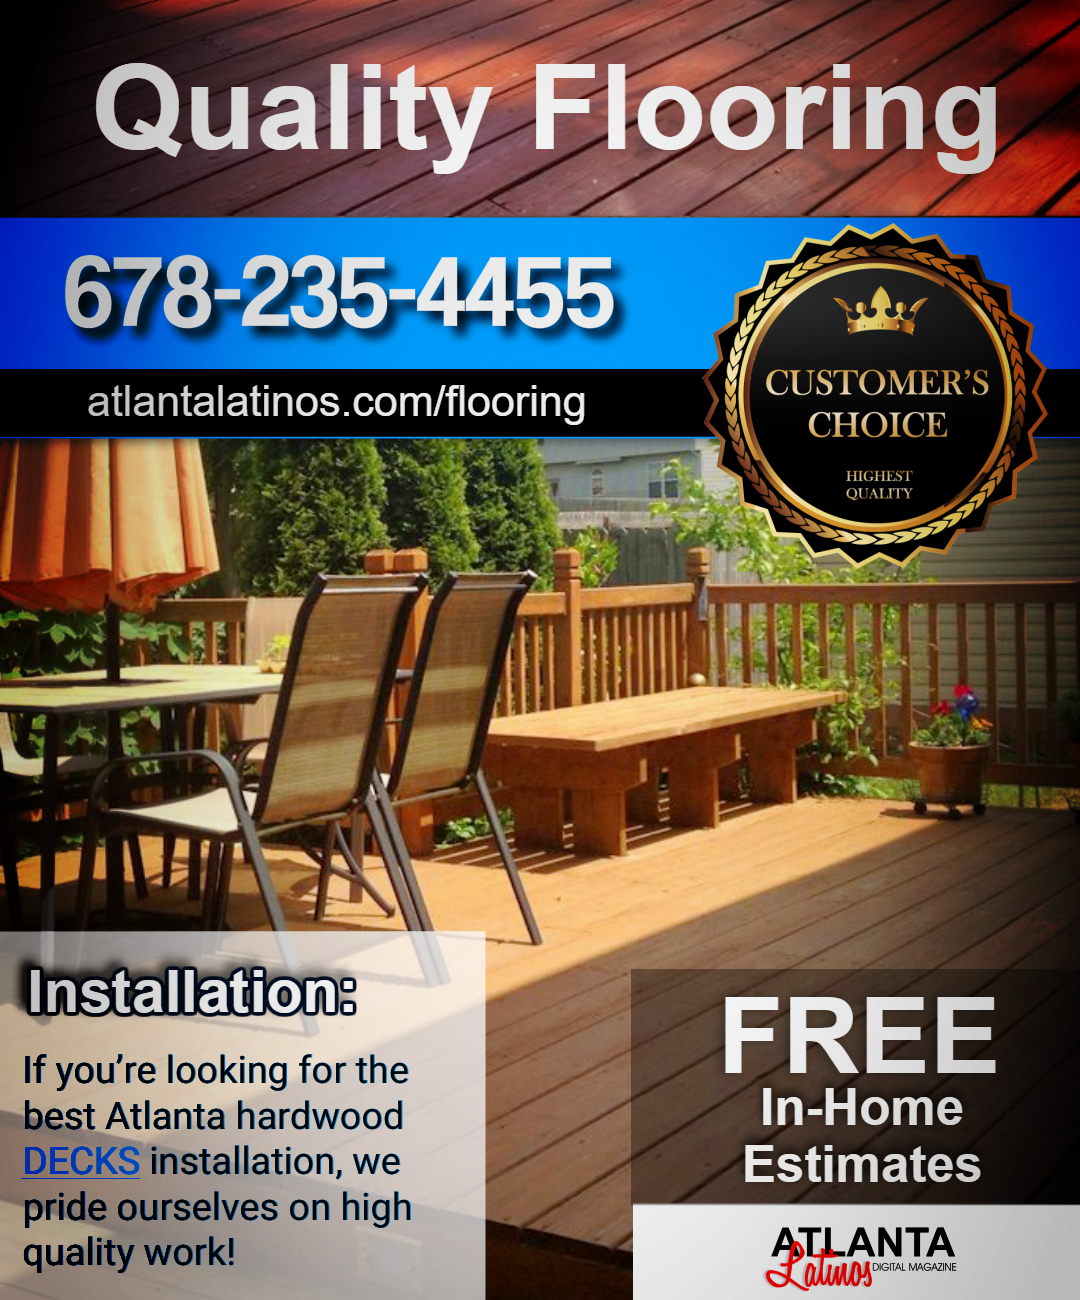 atlanta-patio-decks-installation-cost-decking